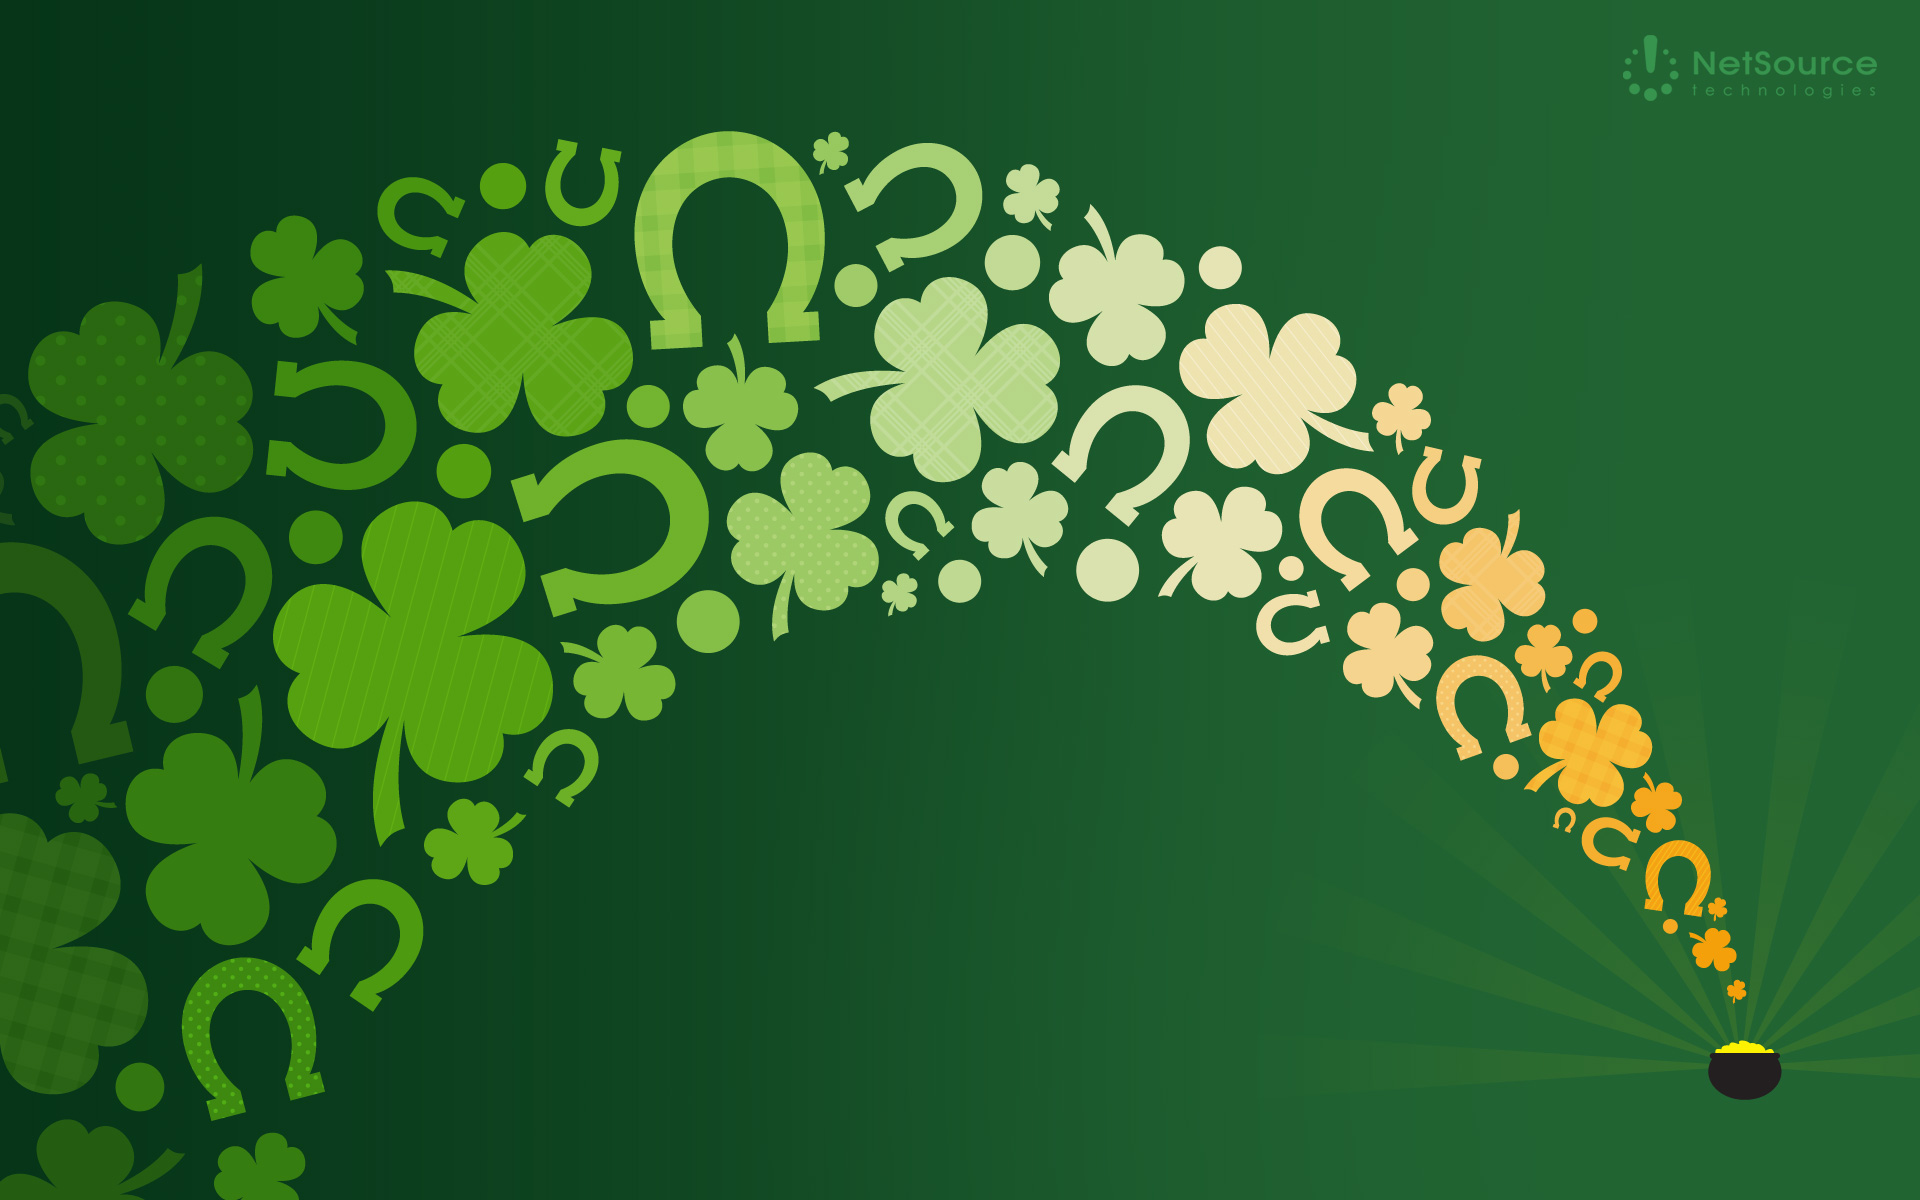 Saint Patricks Day wallpaper   396870 1920x1200